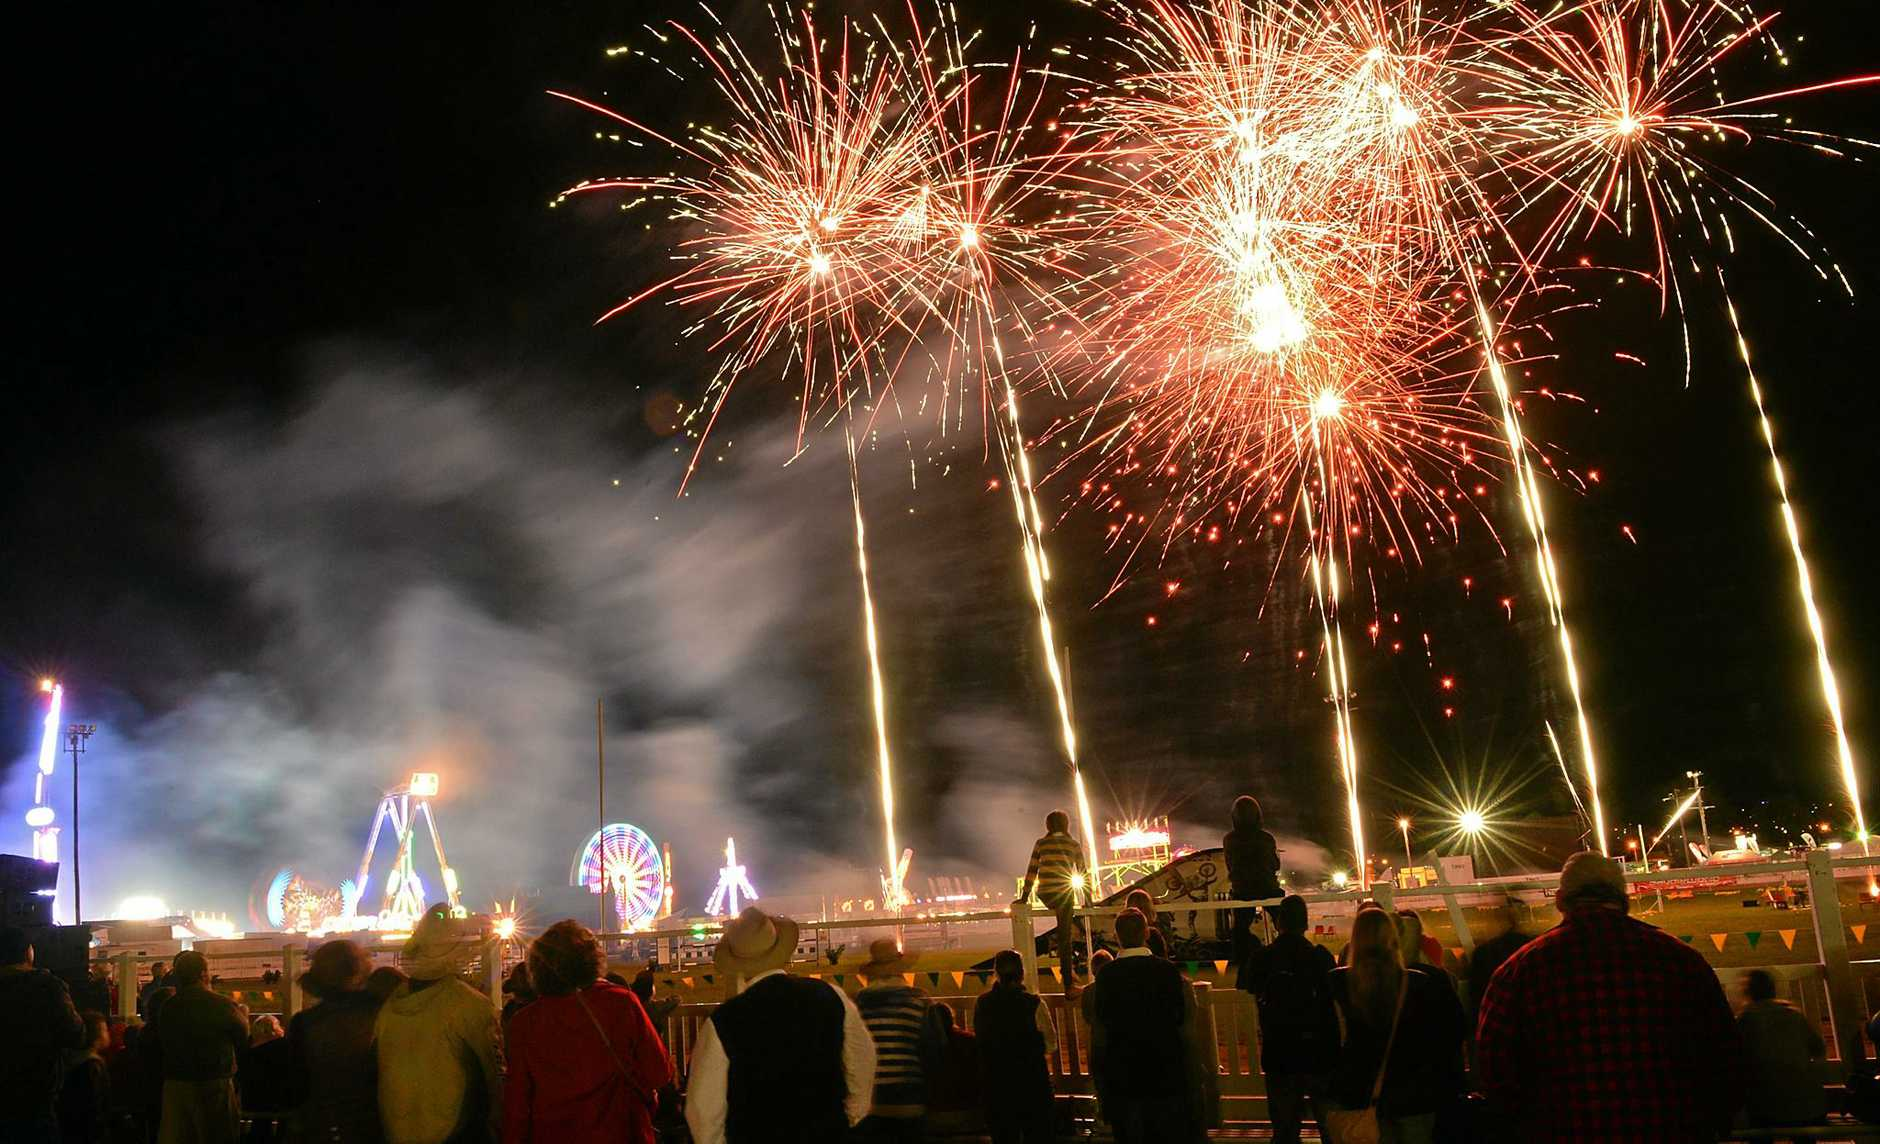 PROUD DISPLAY: Fireworks at this year's Gympie Show.